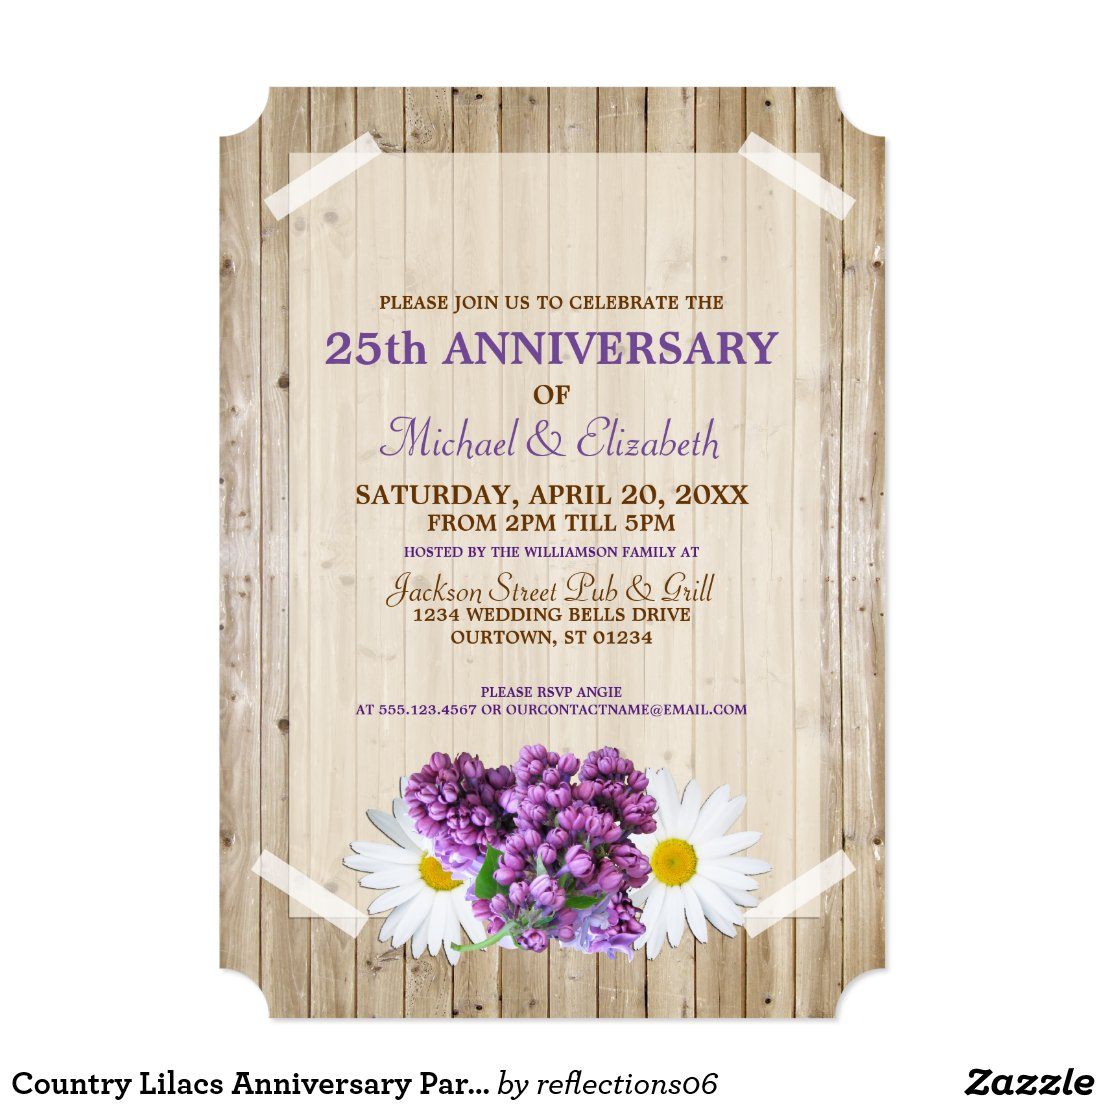 Country Lilacs Anniversary Party Invitation